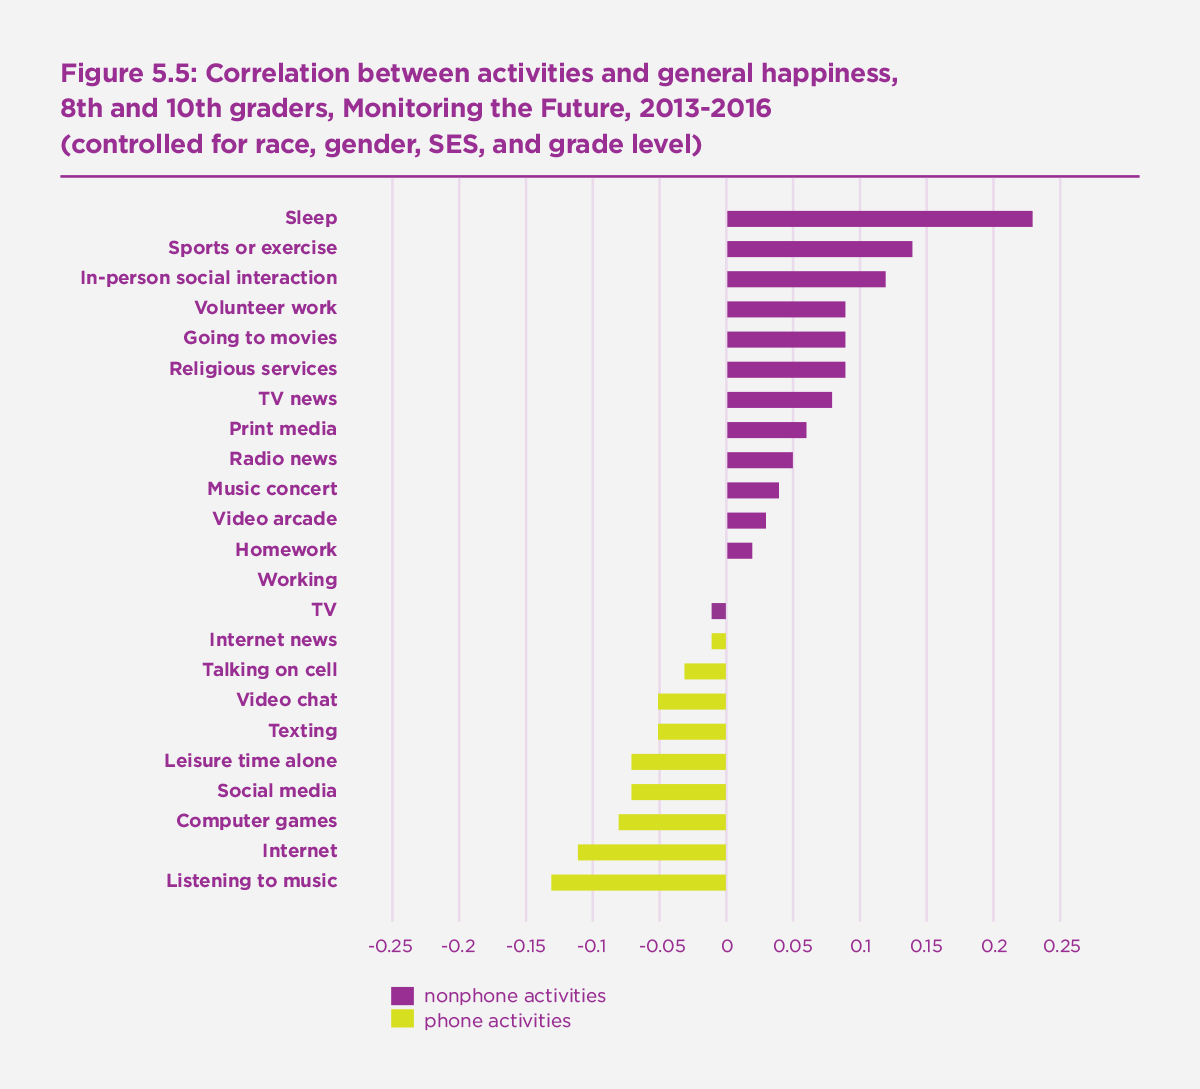 Figure 5.5: Correlation between activities and general happiness, 8th and 10th graders, Monitoring the Future, 2013-2016 (controlled for race, gender, SES, and grade level)